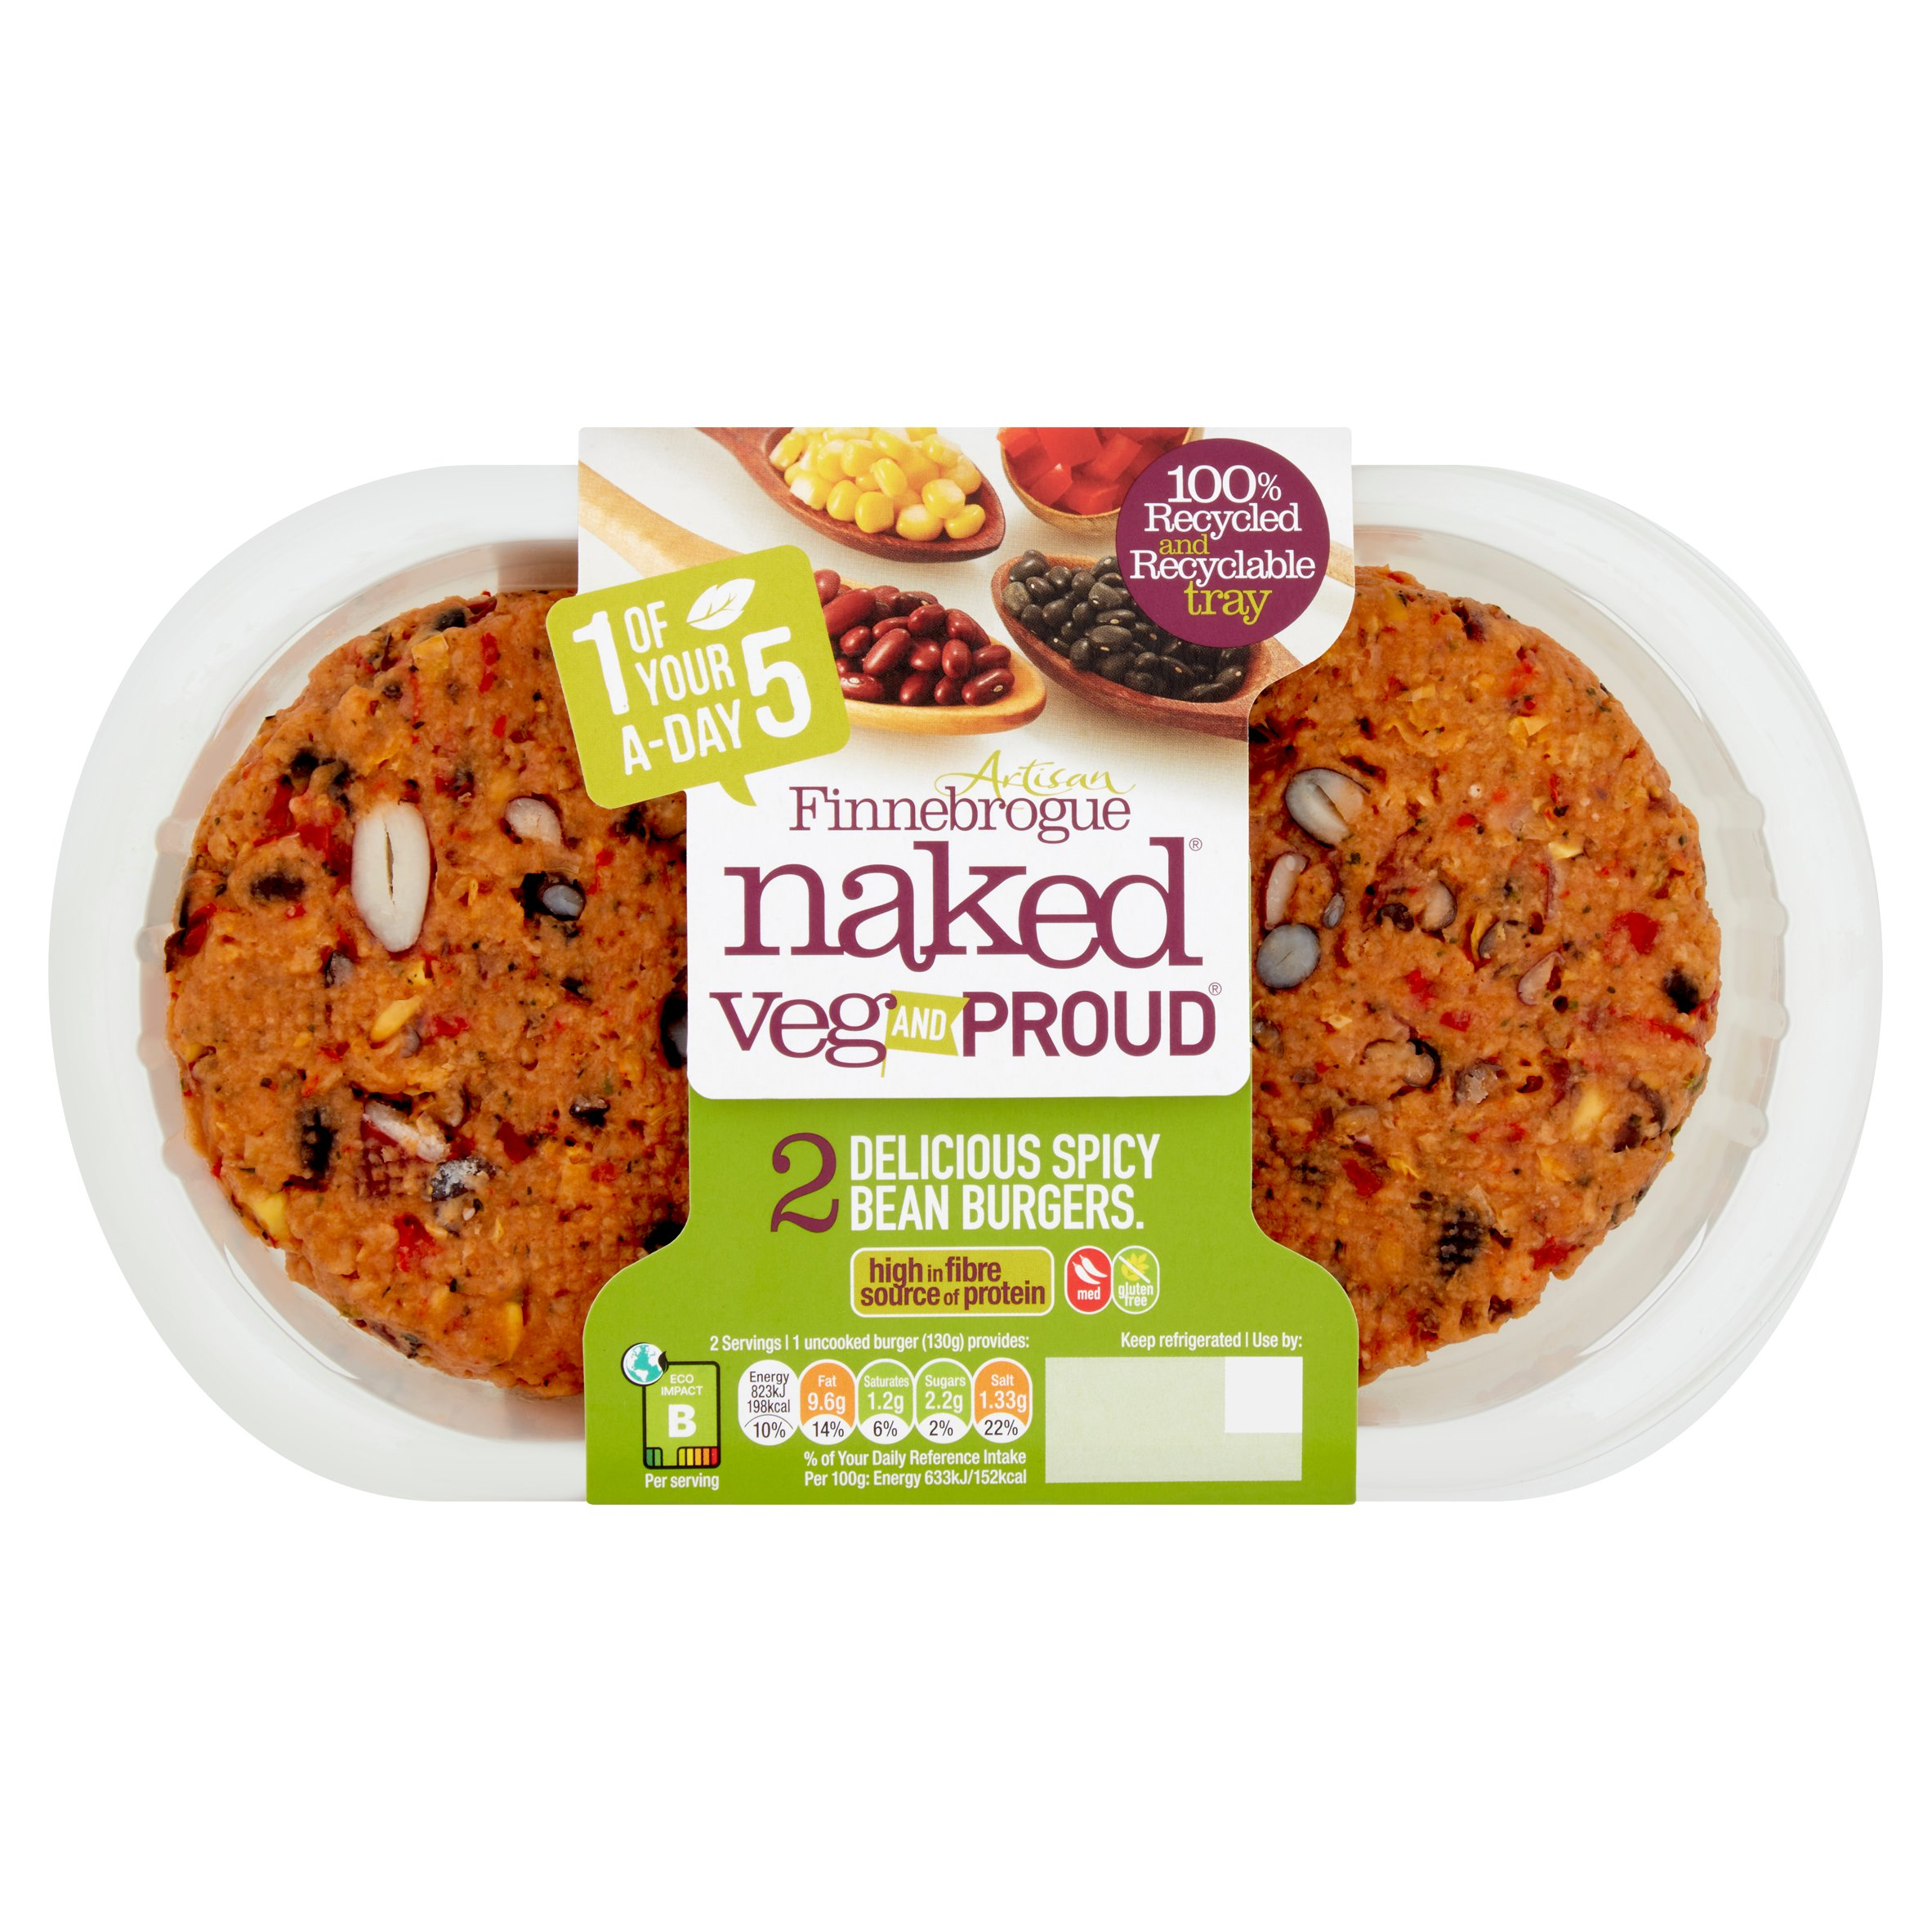 Naked Vegetable & Proud 2 Spicy Bean Burger 260G